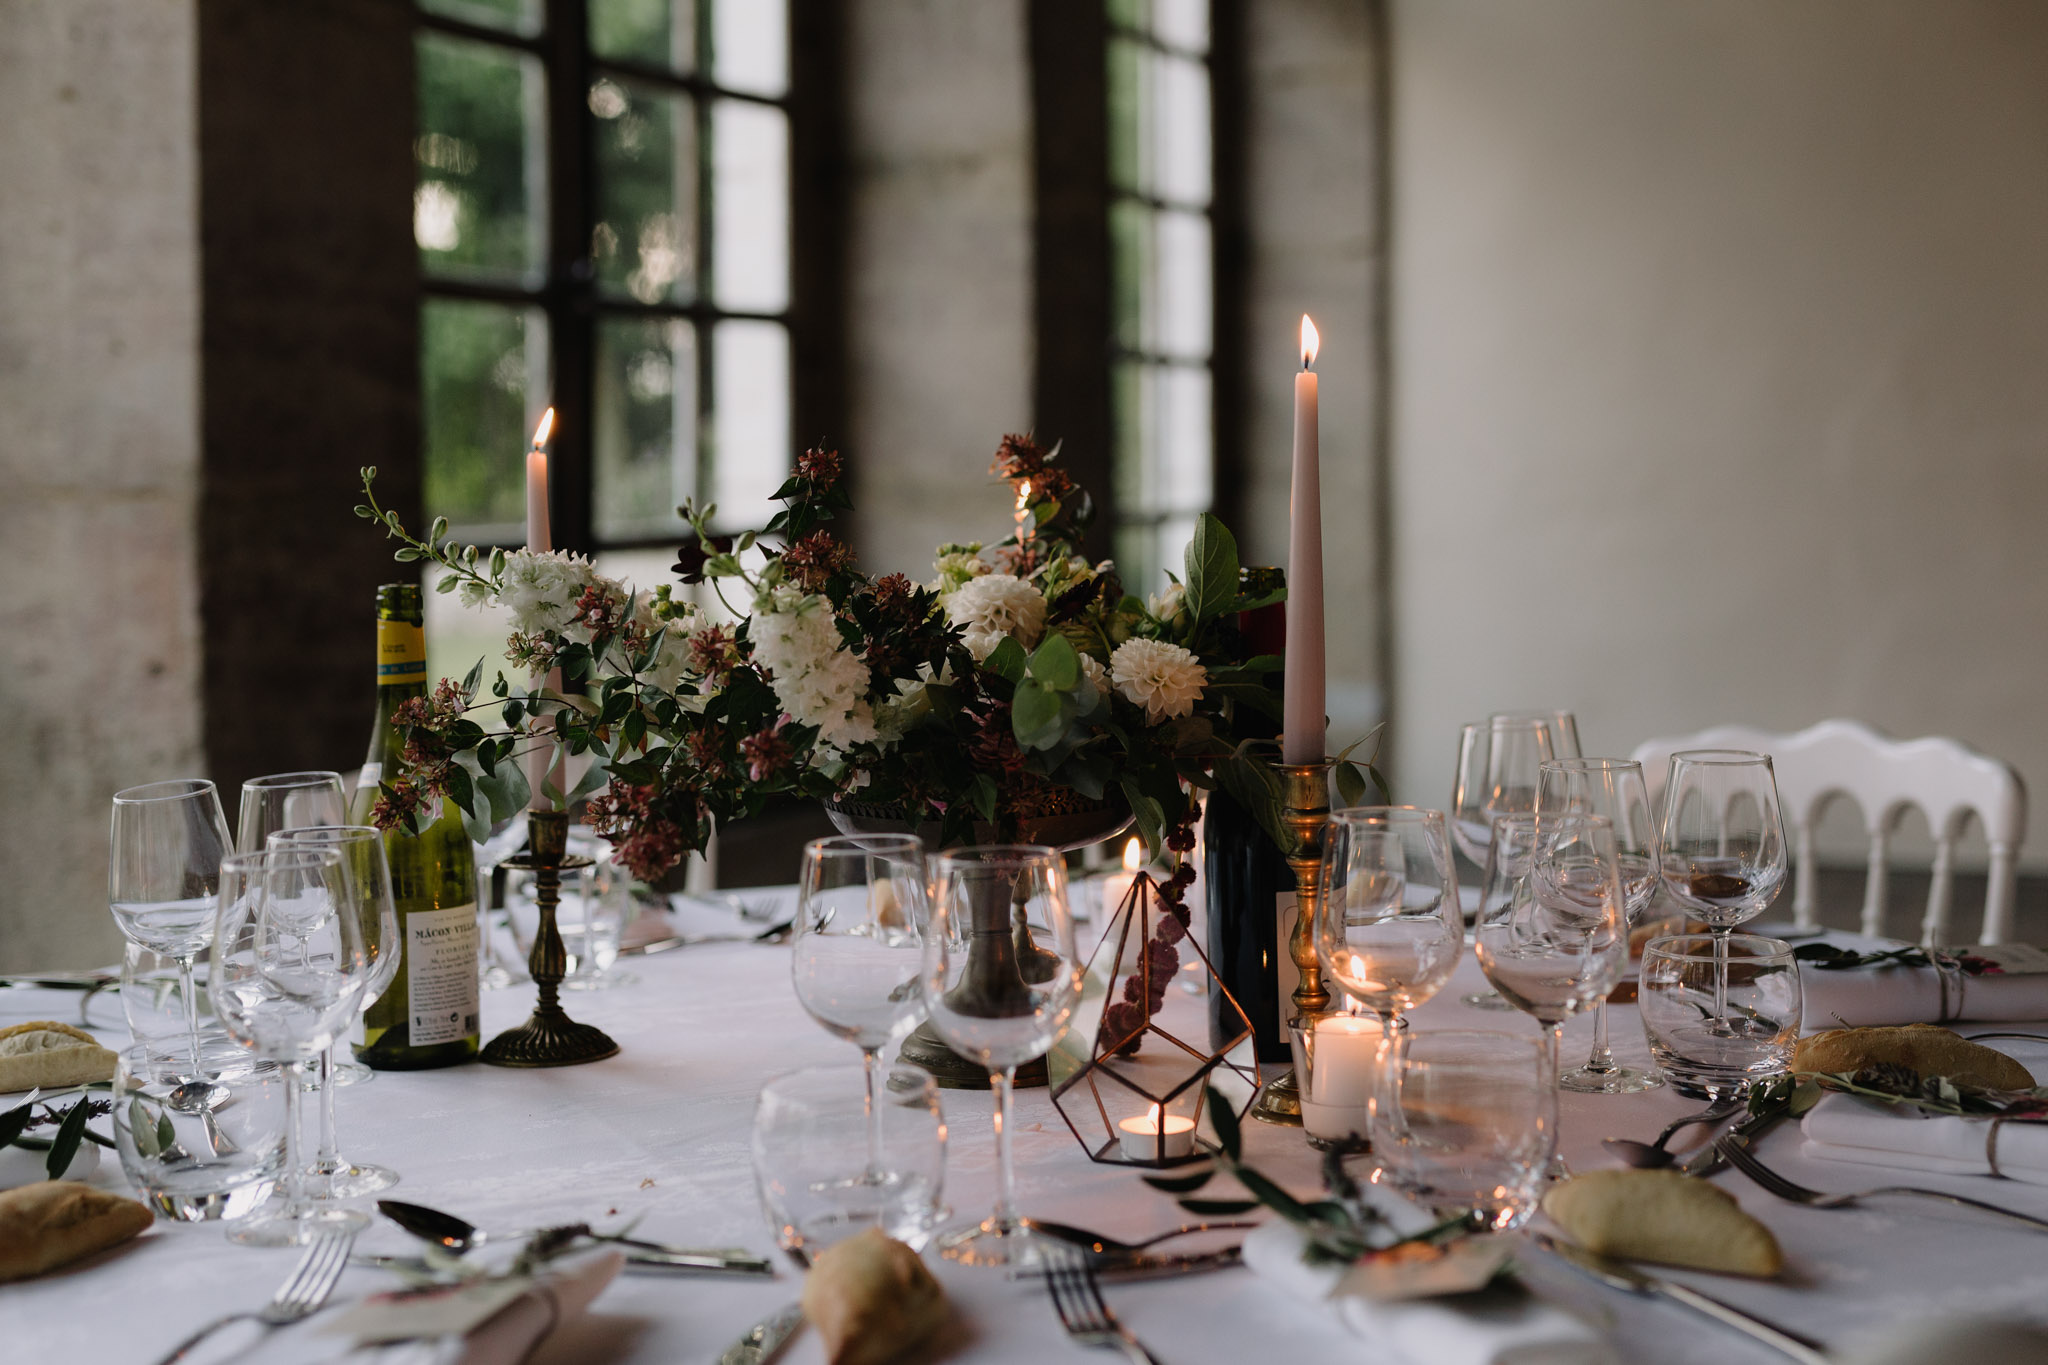 Lyon Wedding photographer Chateau de Montplaisant wedding reception decor Menthe Sauvage Florist